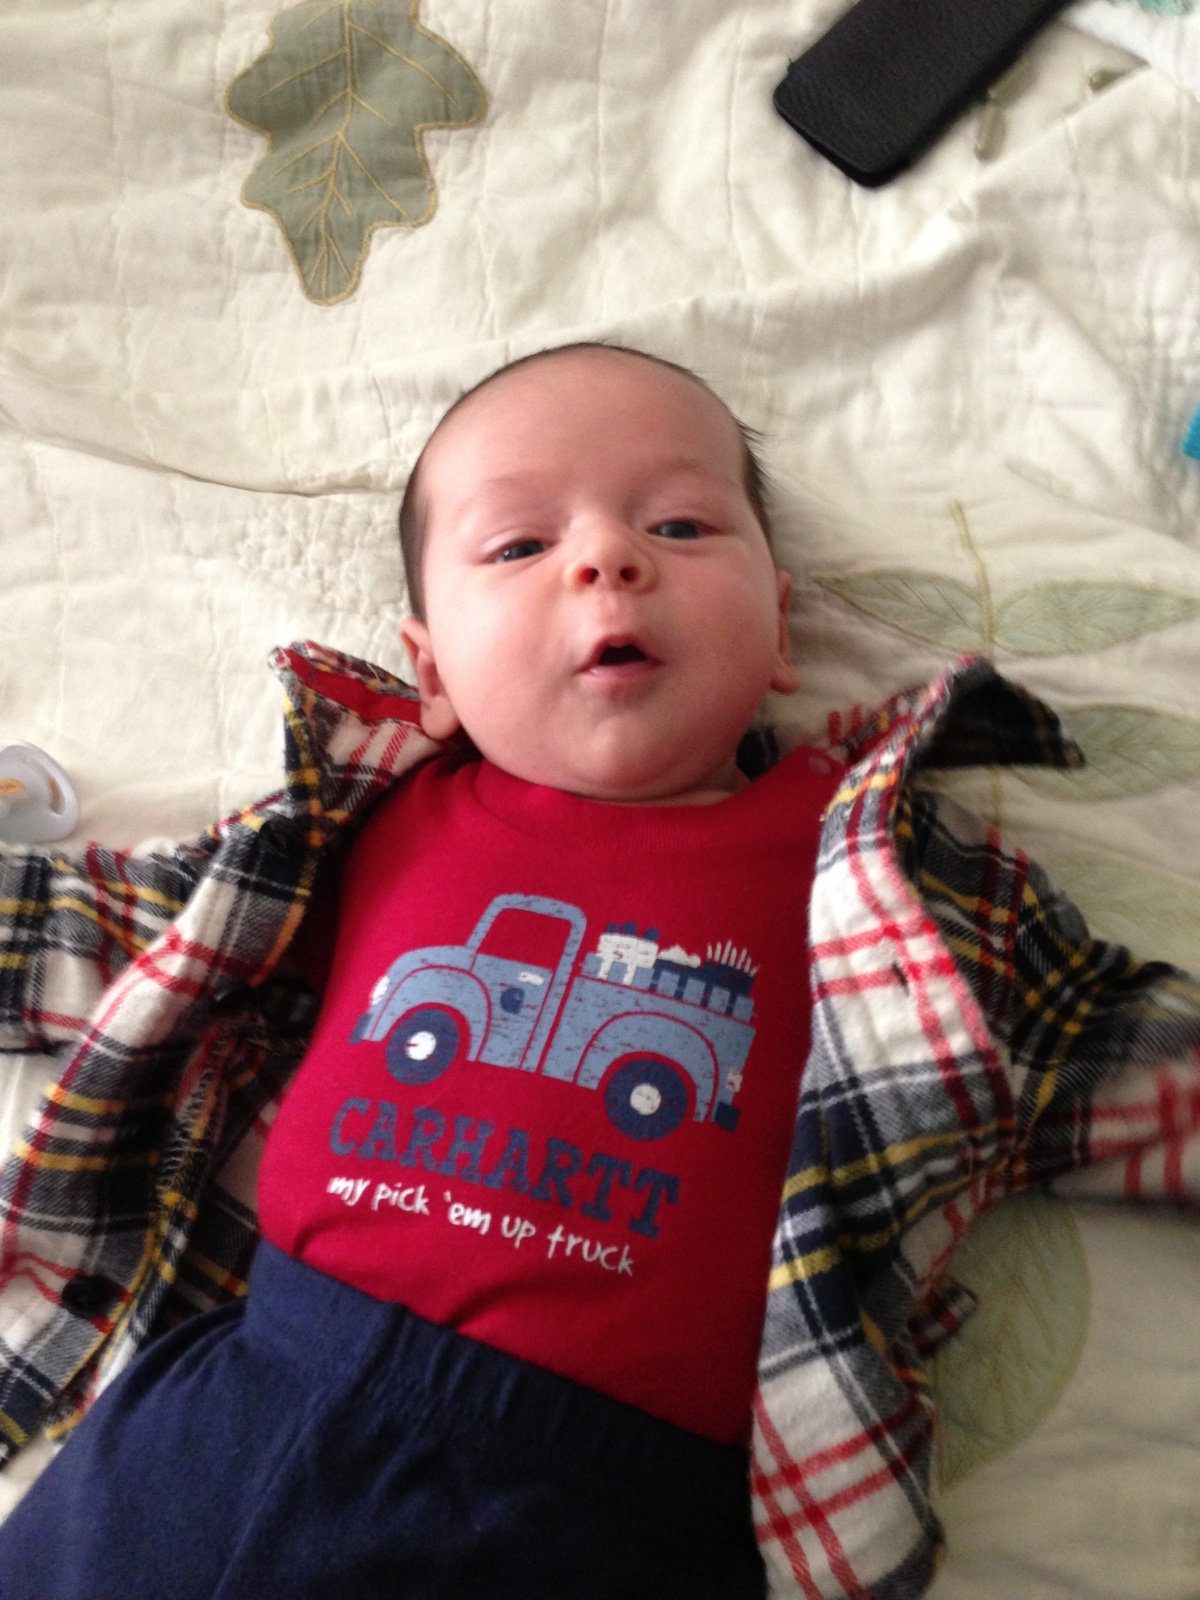 Luca with His Pick 'Em Up Truck Onesie!